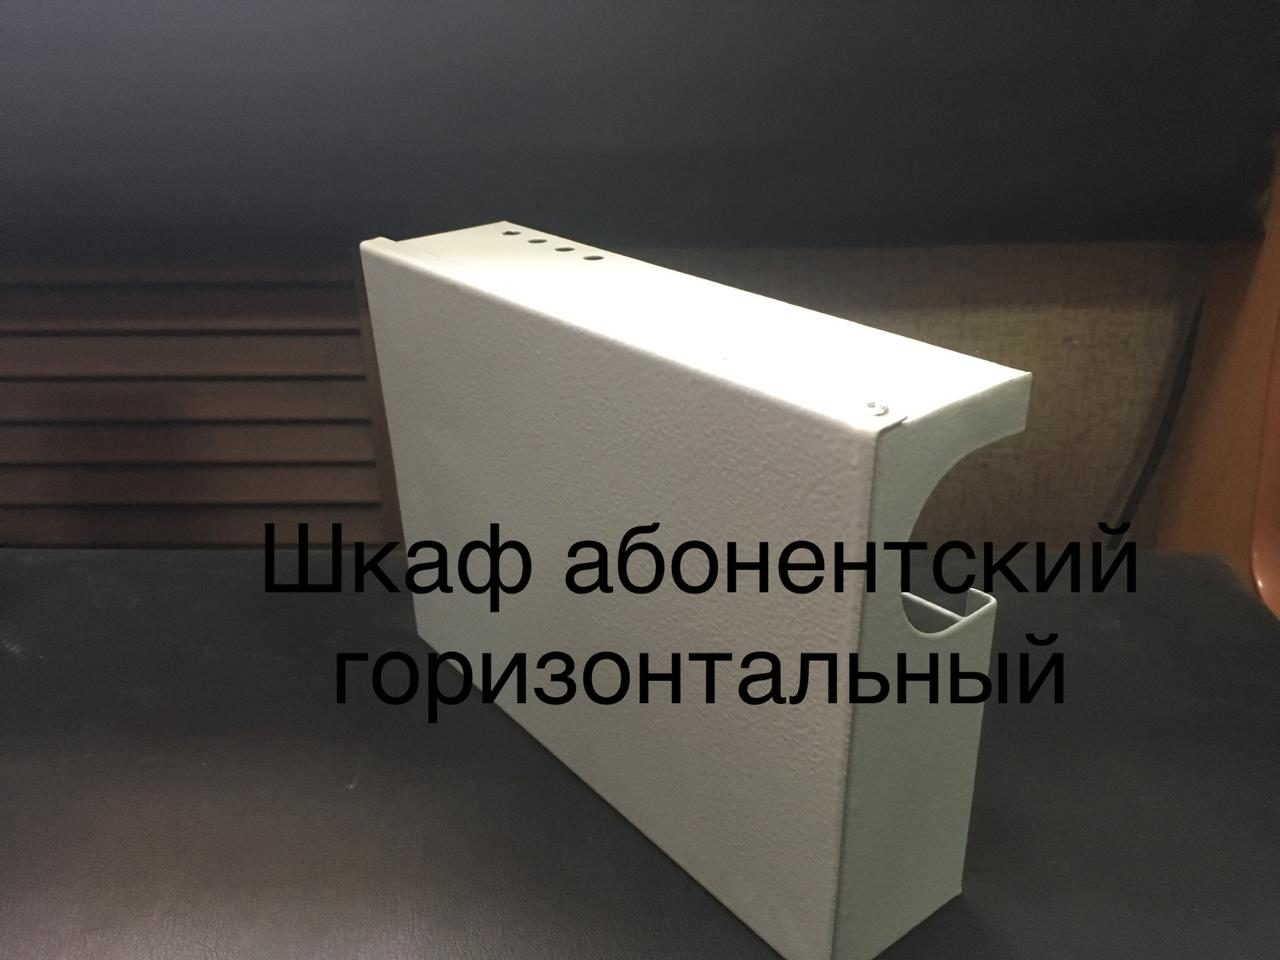 https://energomakc.ru/wp-content/uploads/2019/10/WhatsApp-Image-2019-10-24-at-23.14.33-1280x960.jpeg